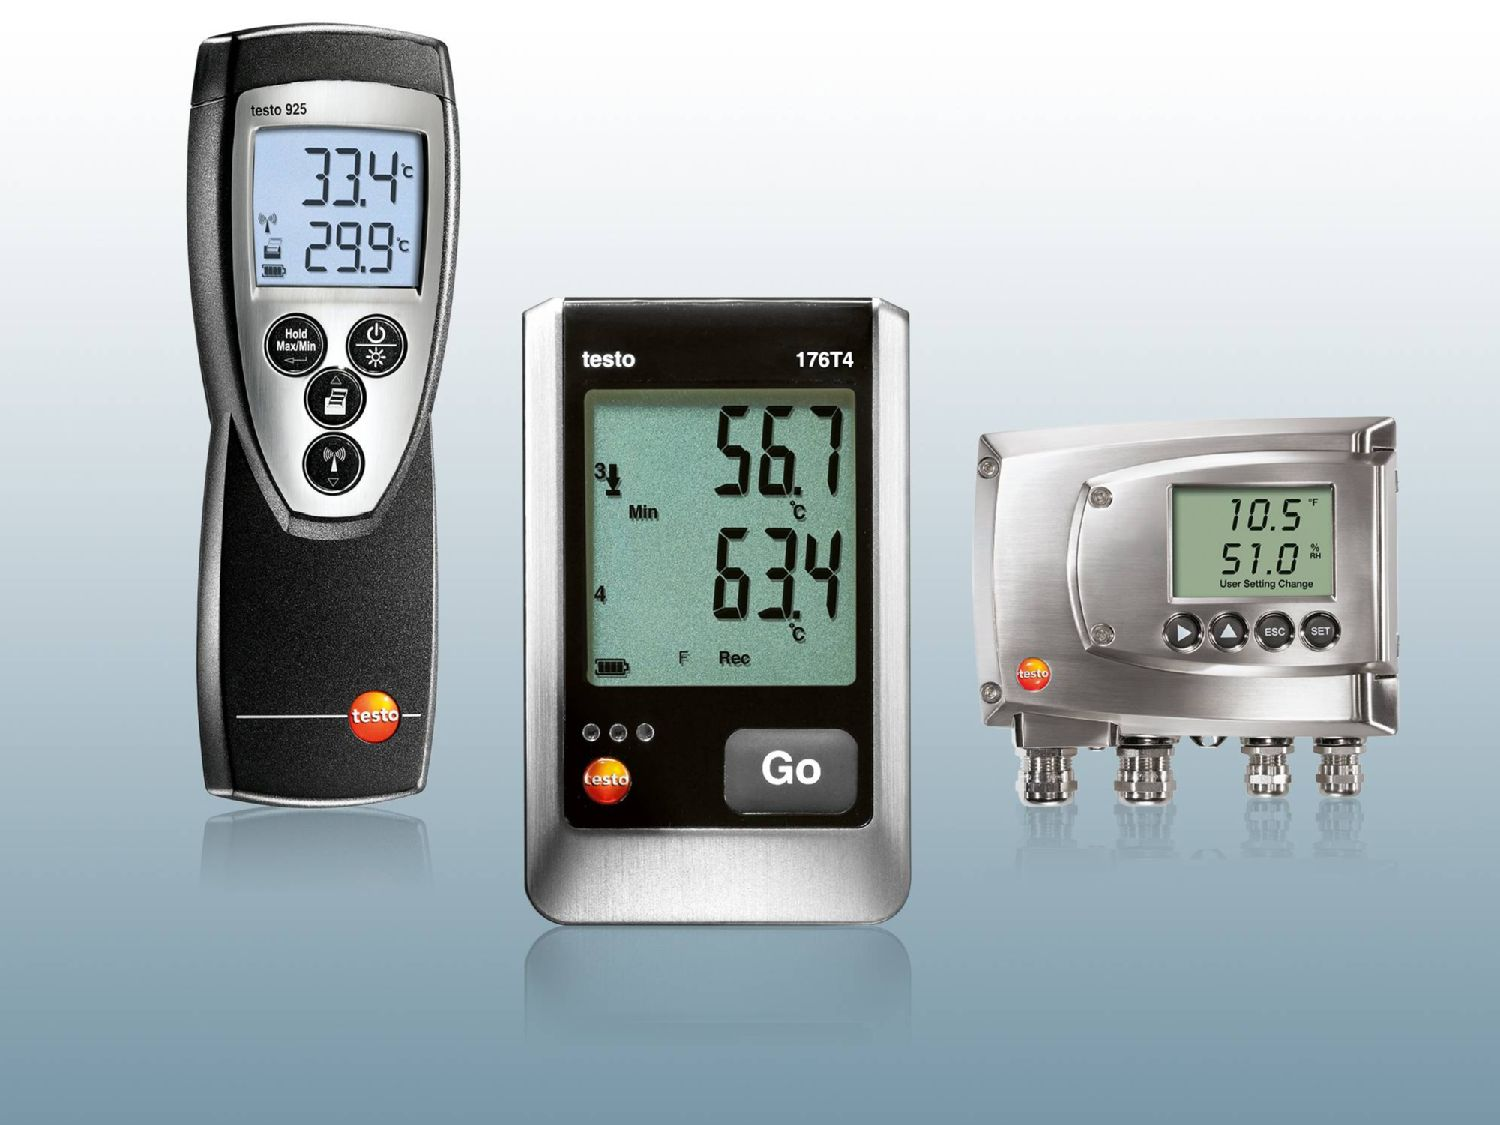 More measuring instruments from Testo